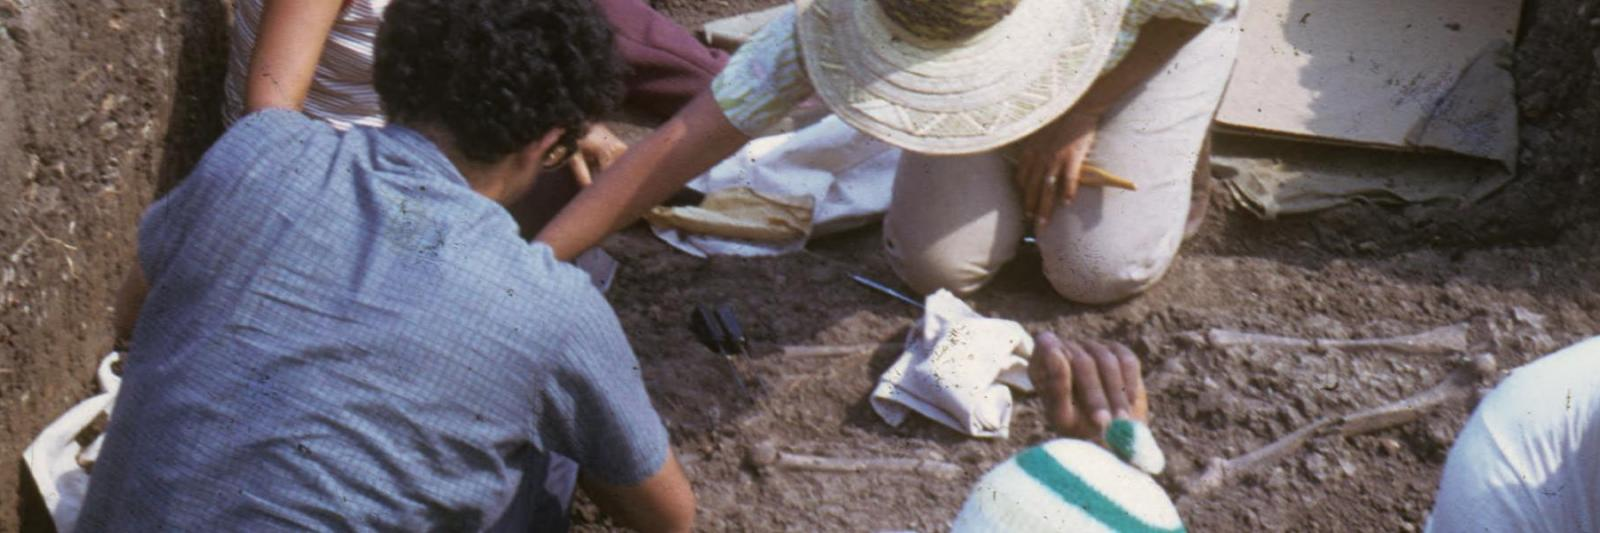 Researchers digging for artifacts